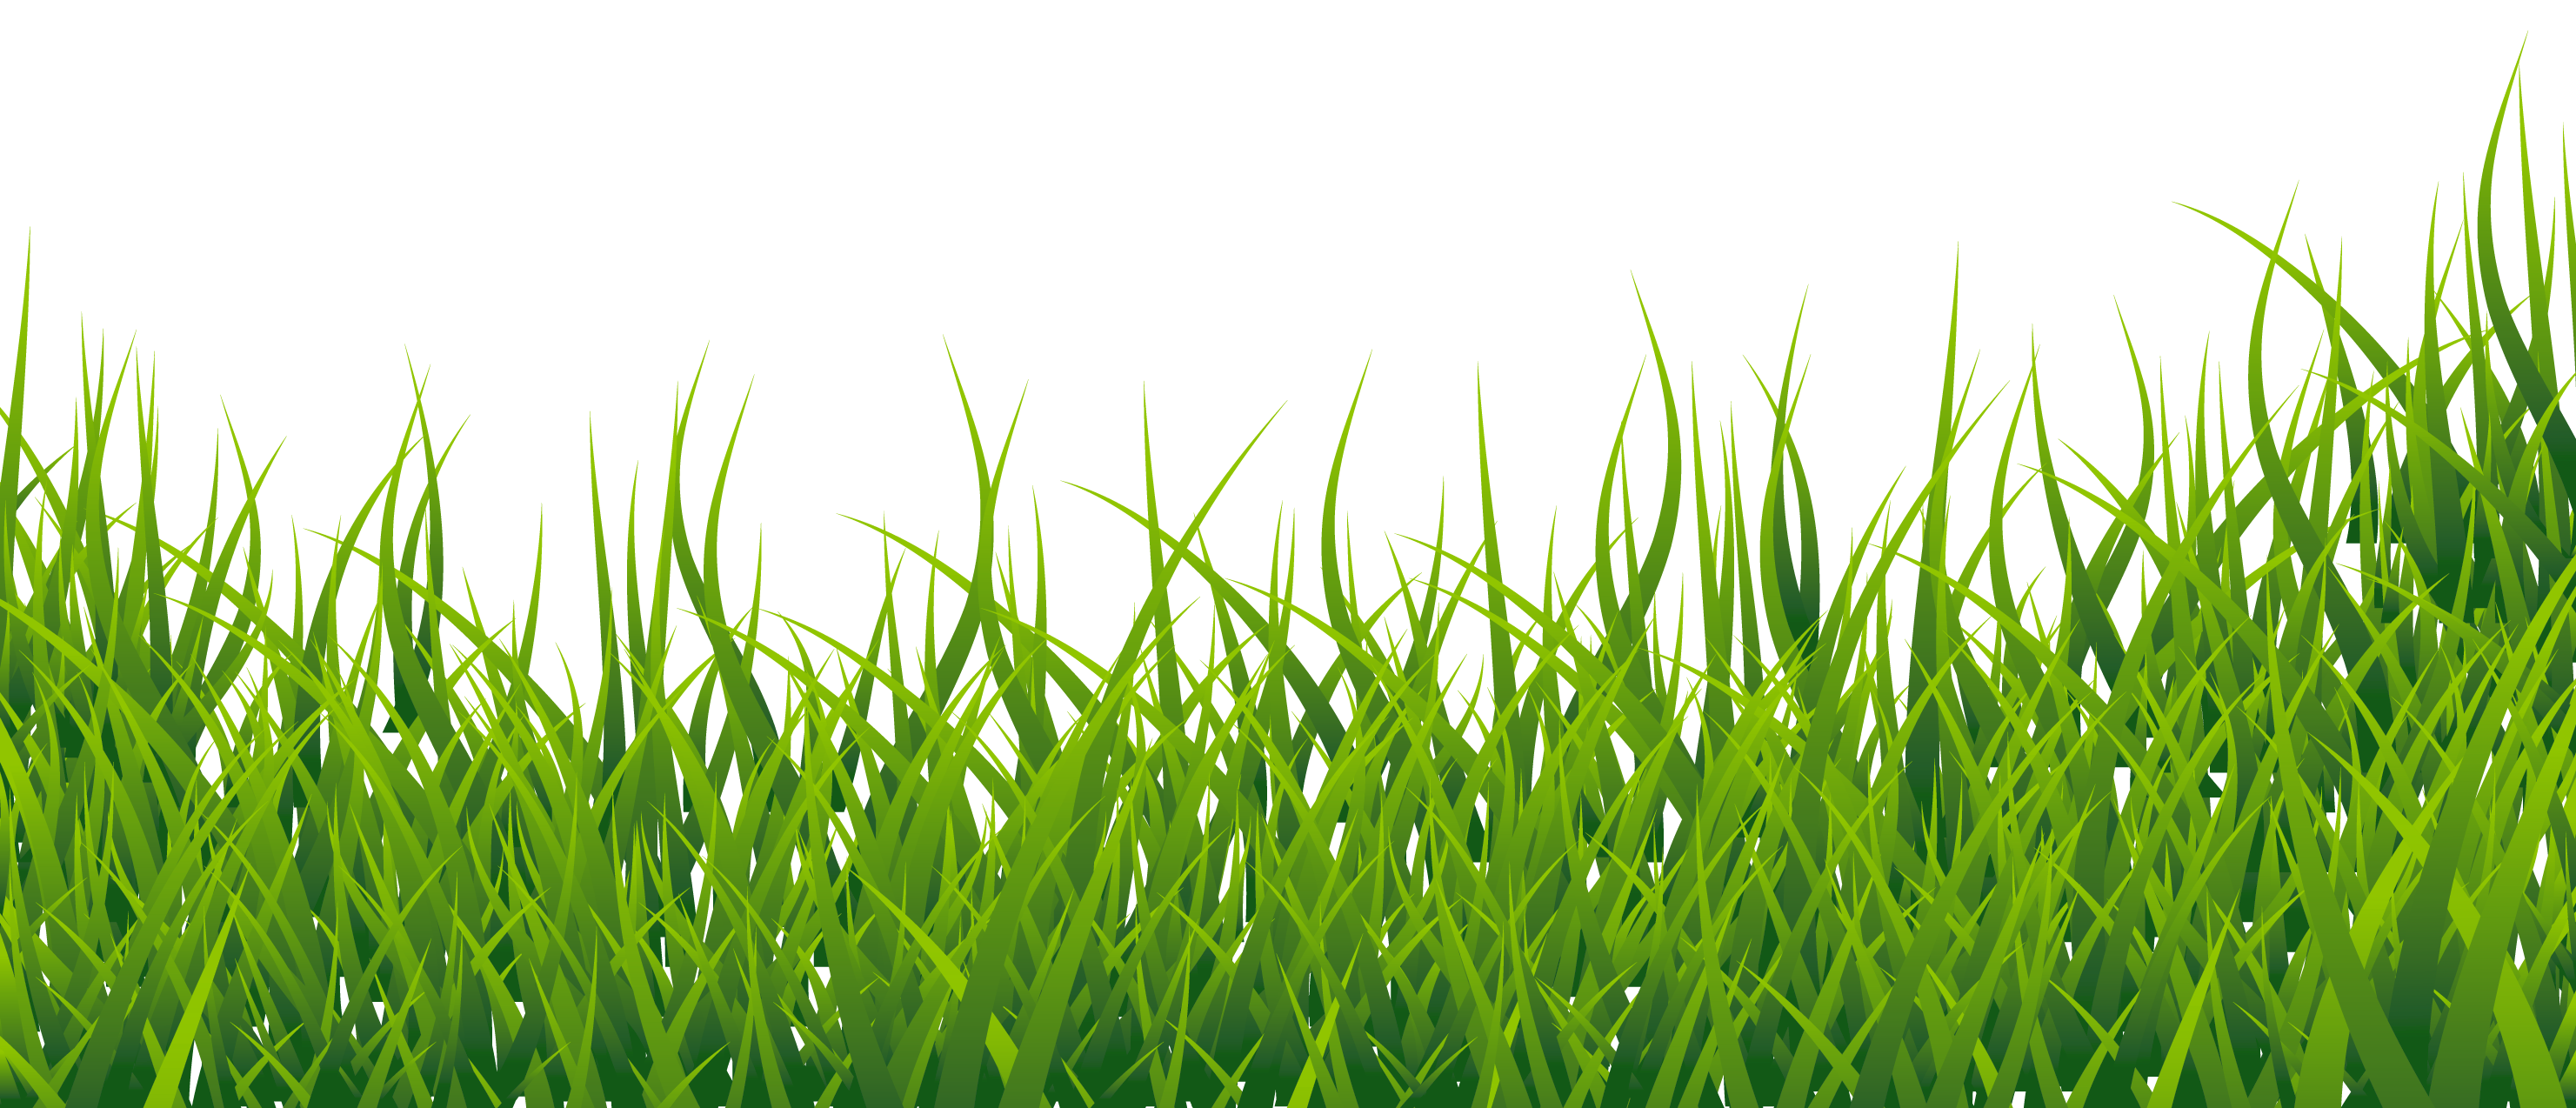 Grass clipart #7, Download drawings